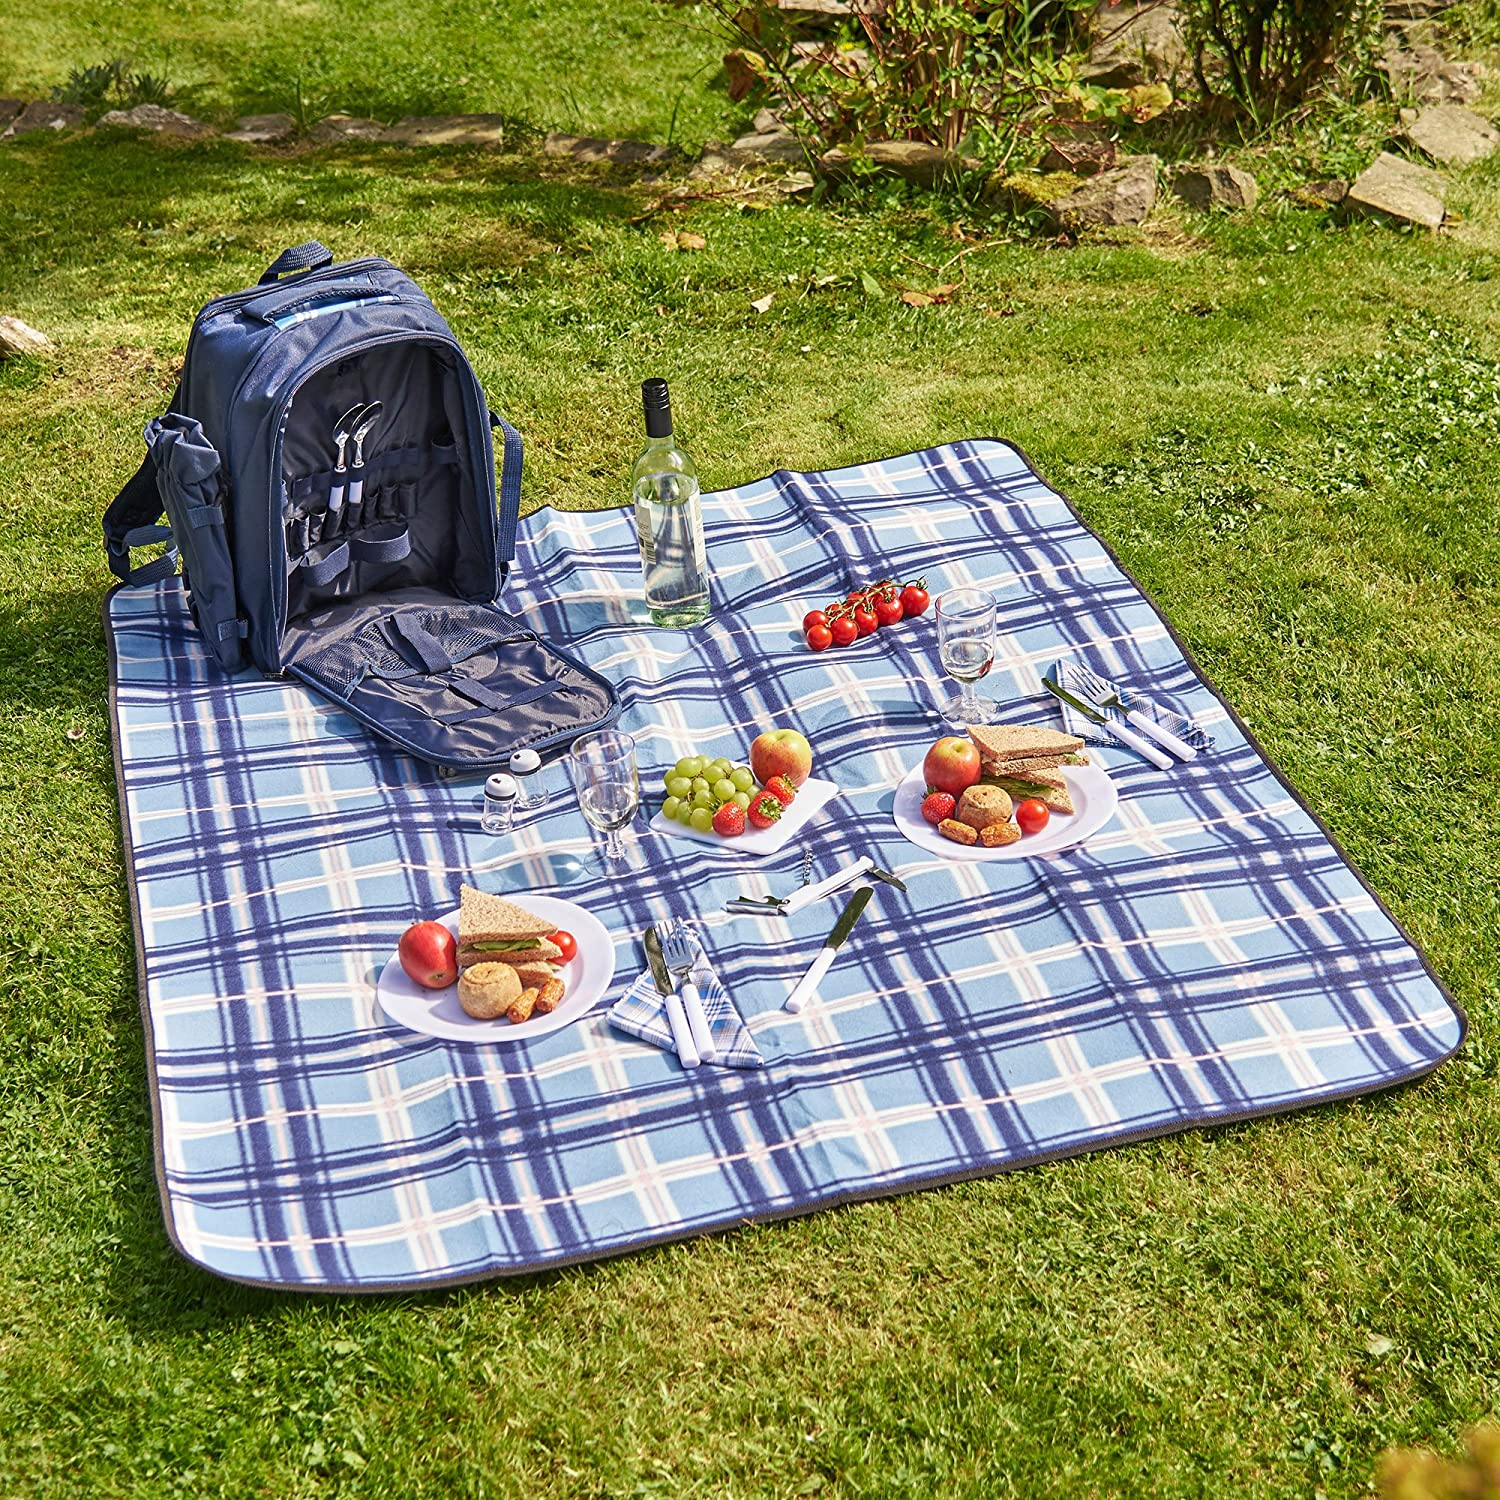 VonShef Two-Person Blue Picnic Backpack Hamper with Cooler Compartment – Includes Tableware and Fleece Blanket